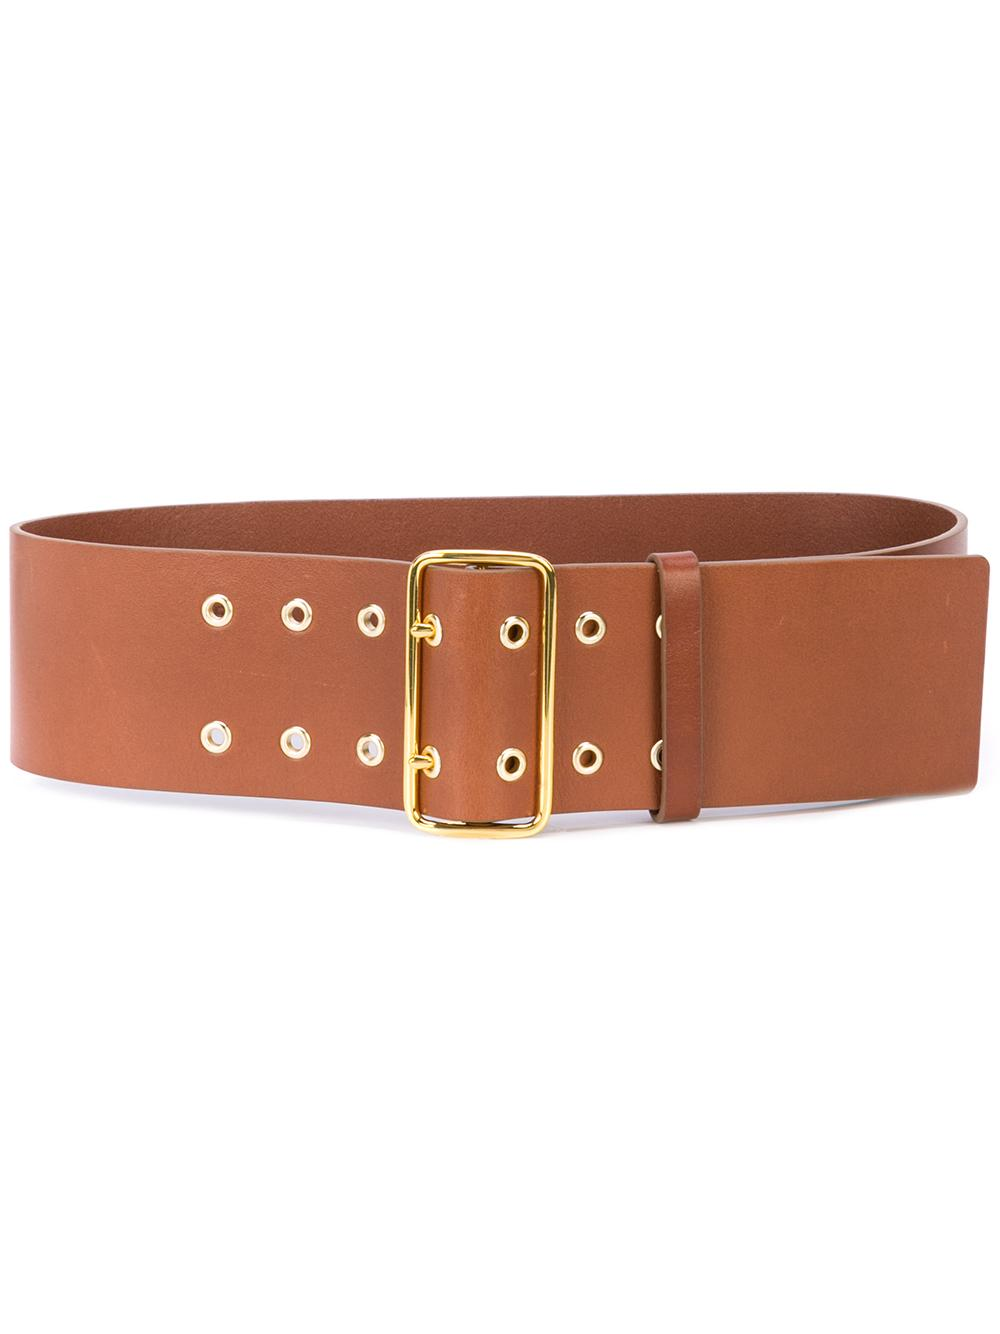 Double Grommet Wide Waist Belt